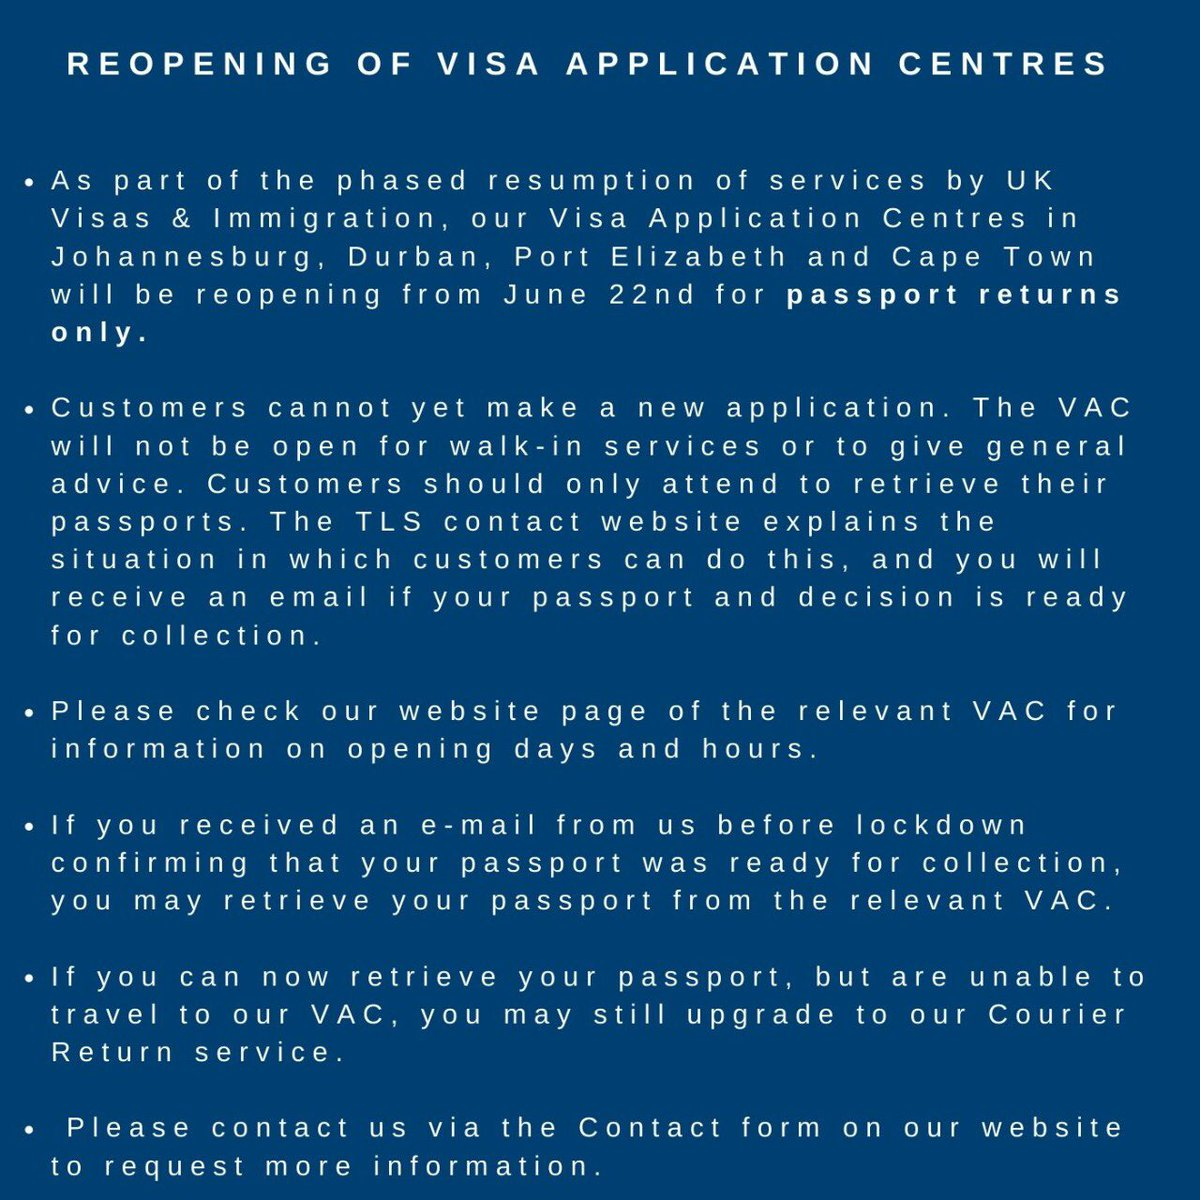 Uk In South Africa On Twitter 1 3 Visa Application Centres Re Open For Passport Collection We Re Now Returning Passports Allowing Applications For 30 Day Extensions We Ll Update On The Start Of More Services